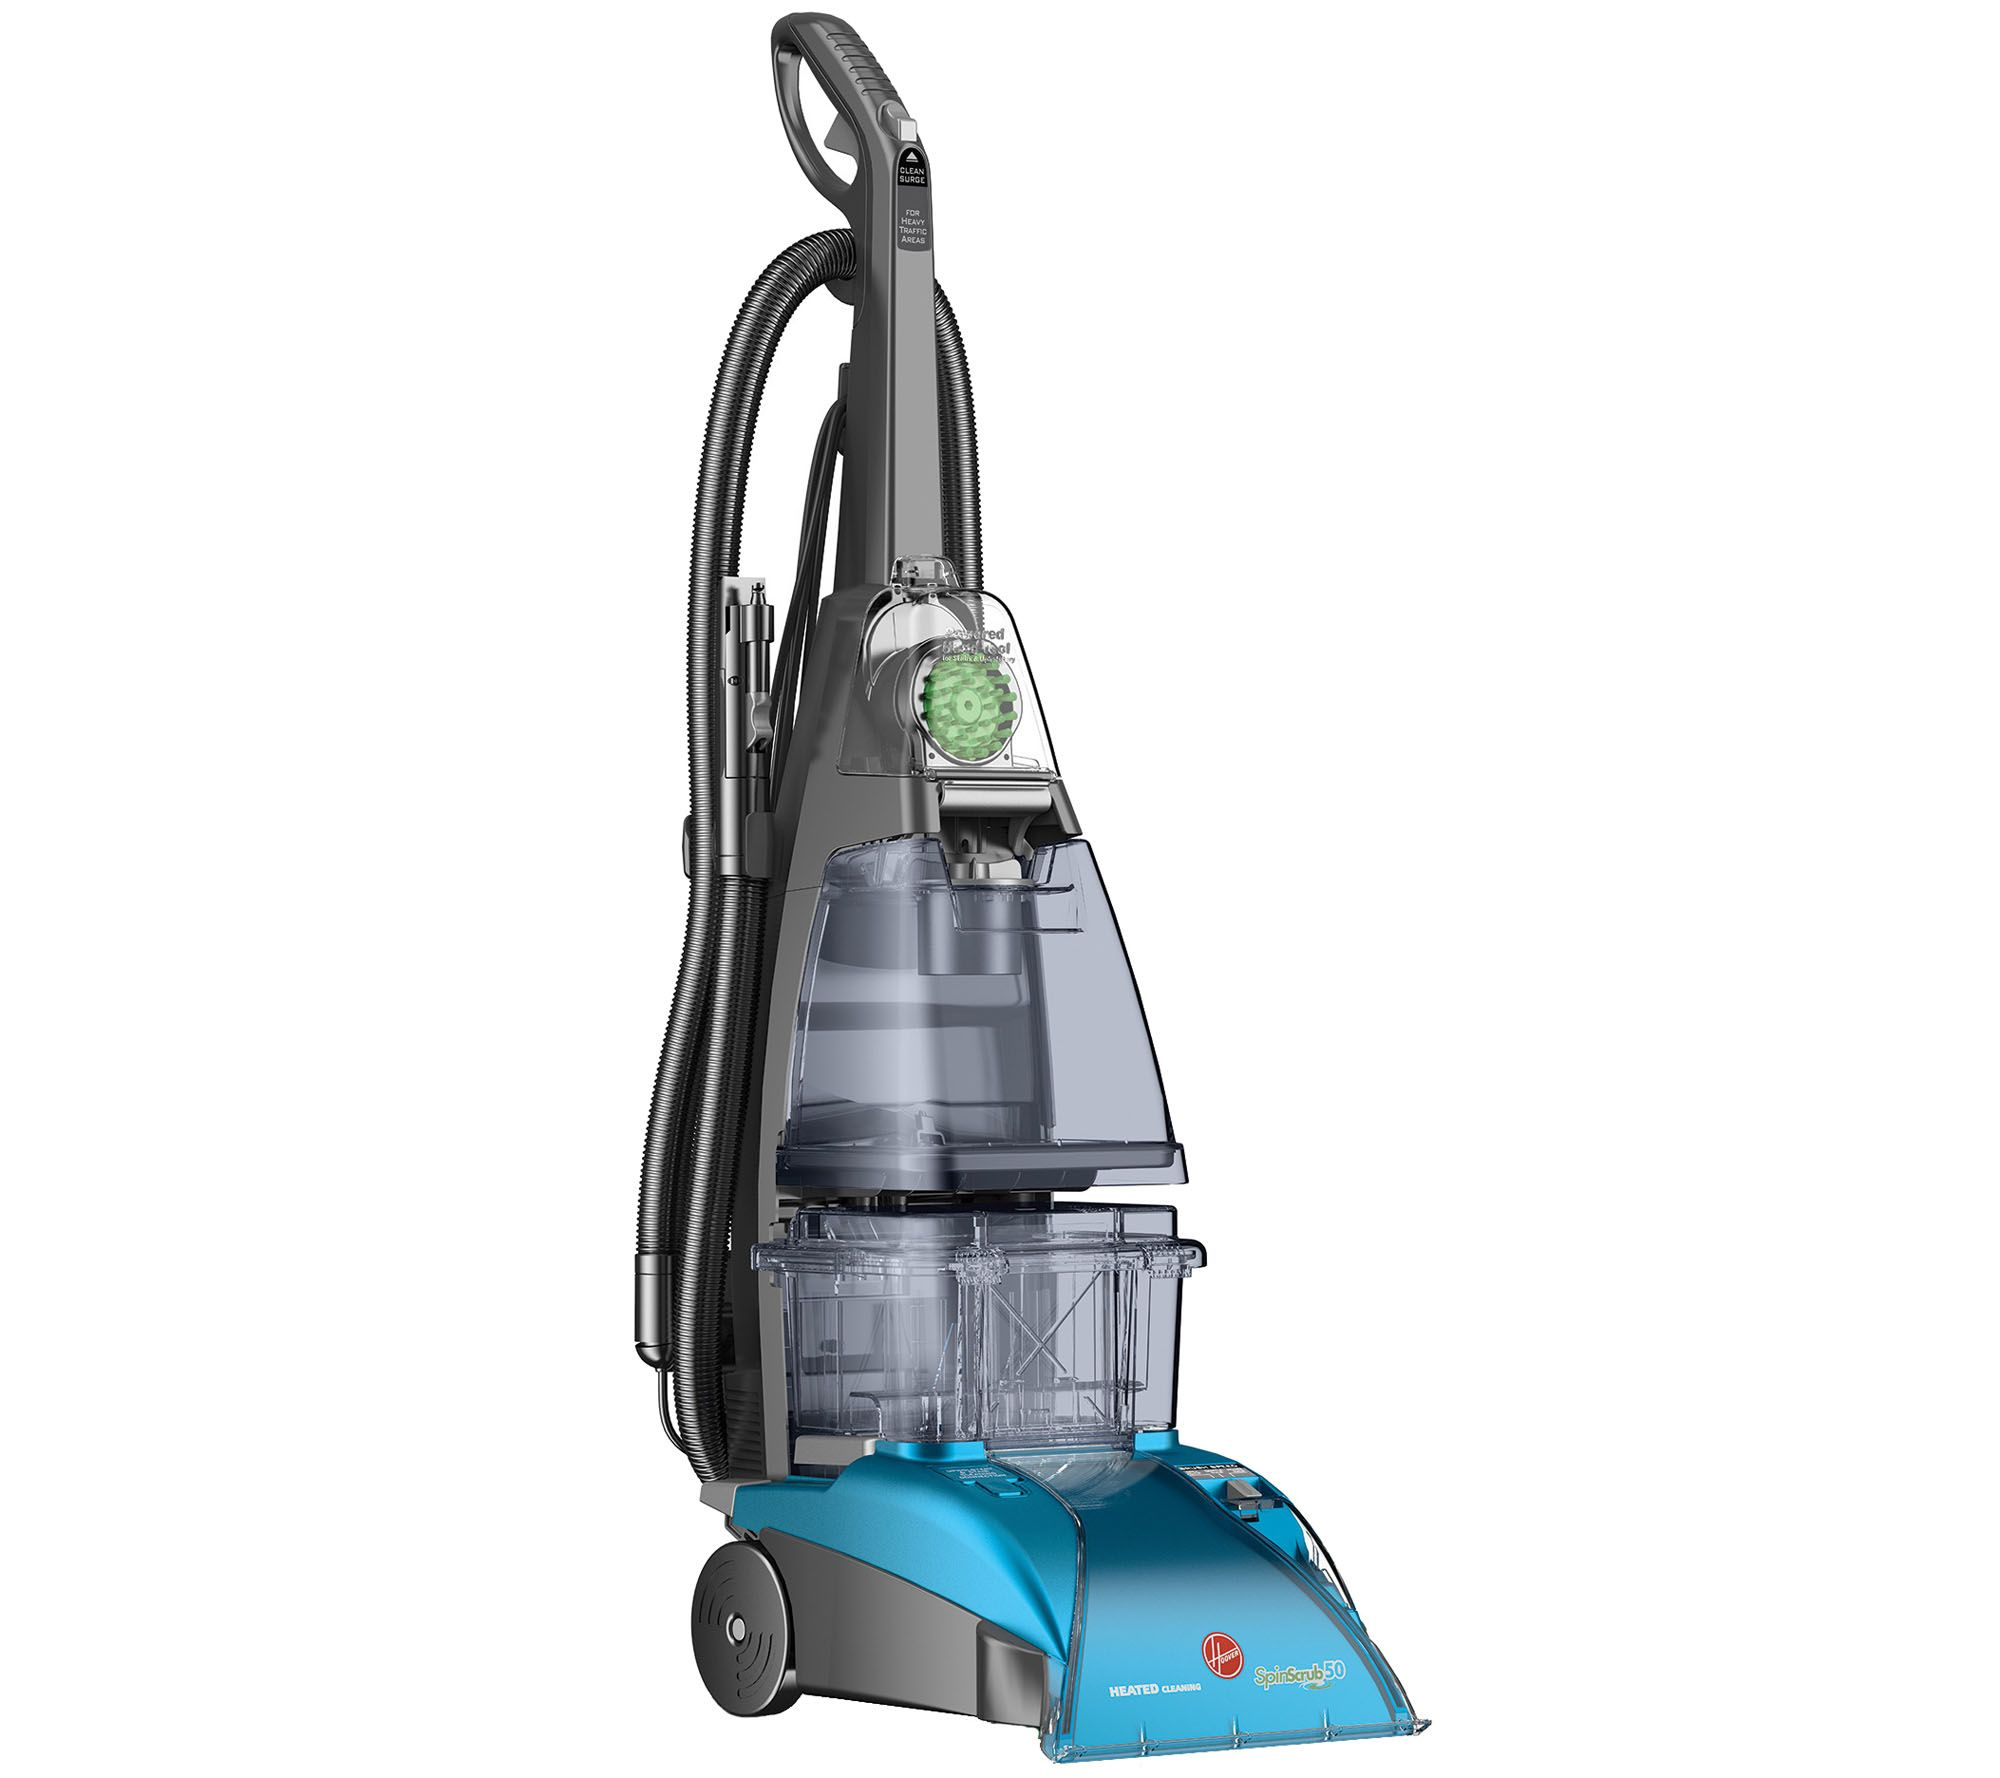 Hoover Deep Cleaning Steam Vacuum With Clean Surge   Page 1 U2014 QVC.com